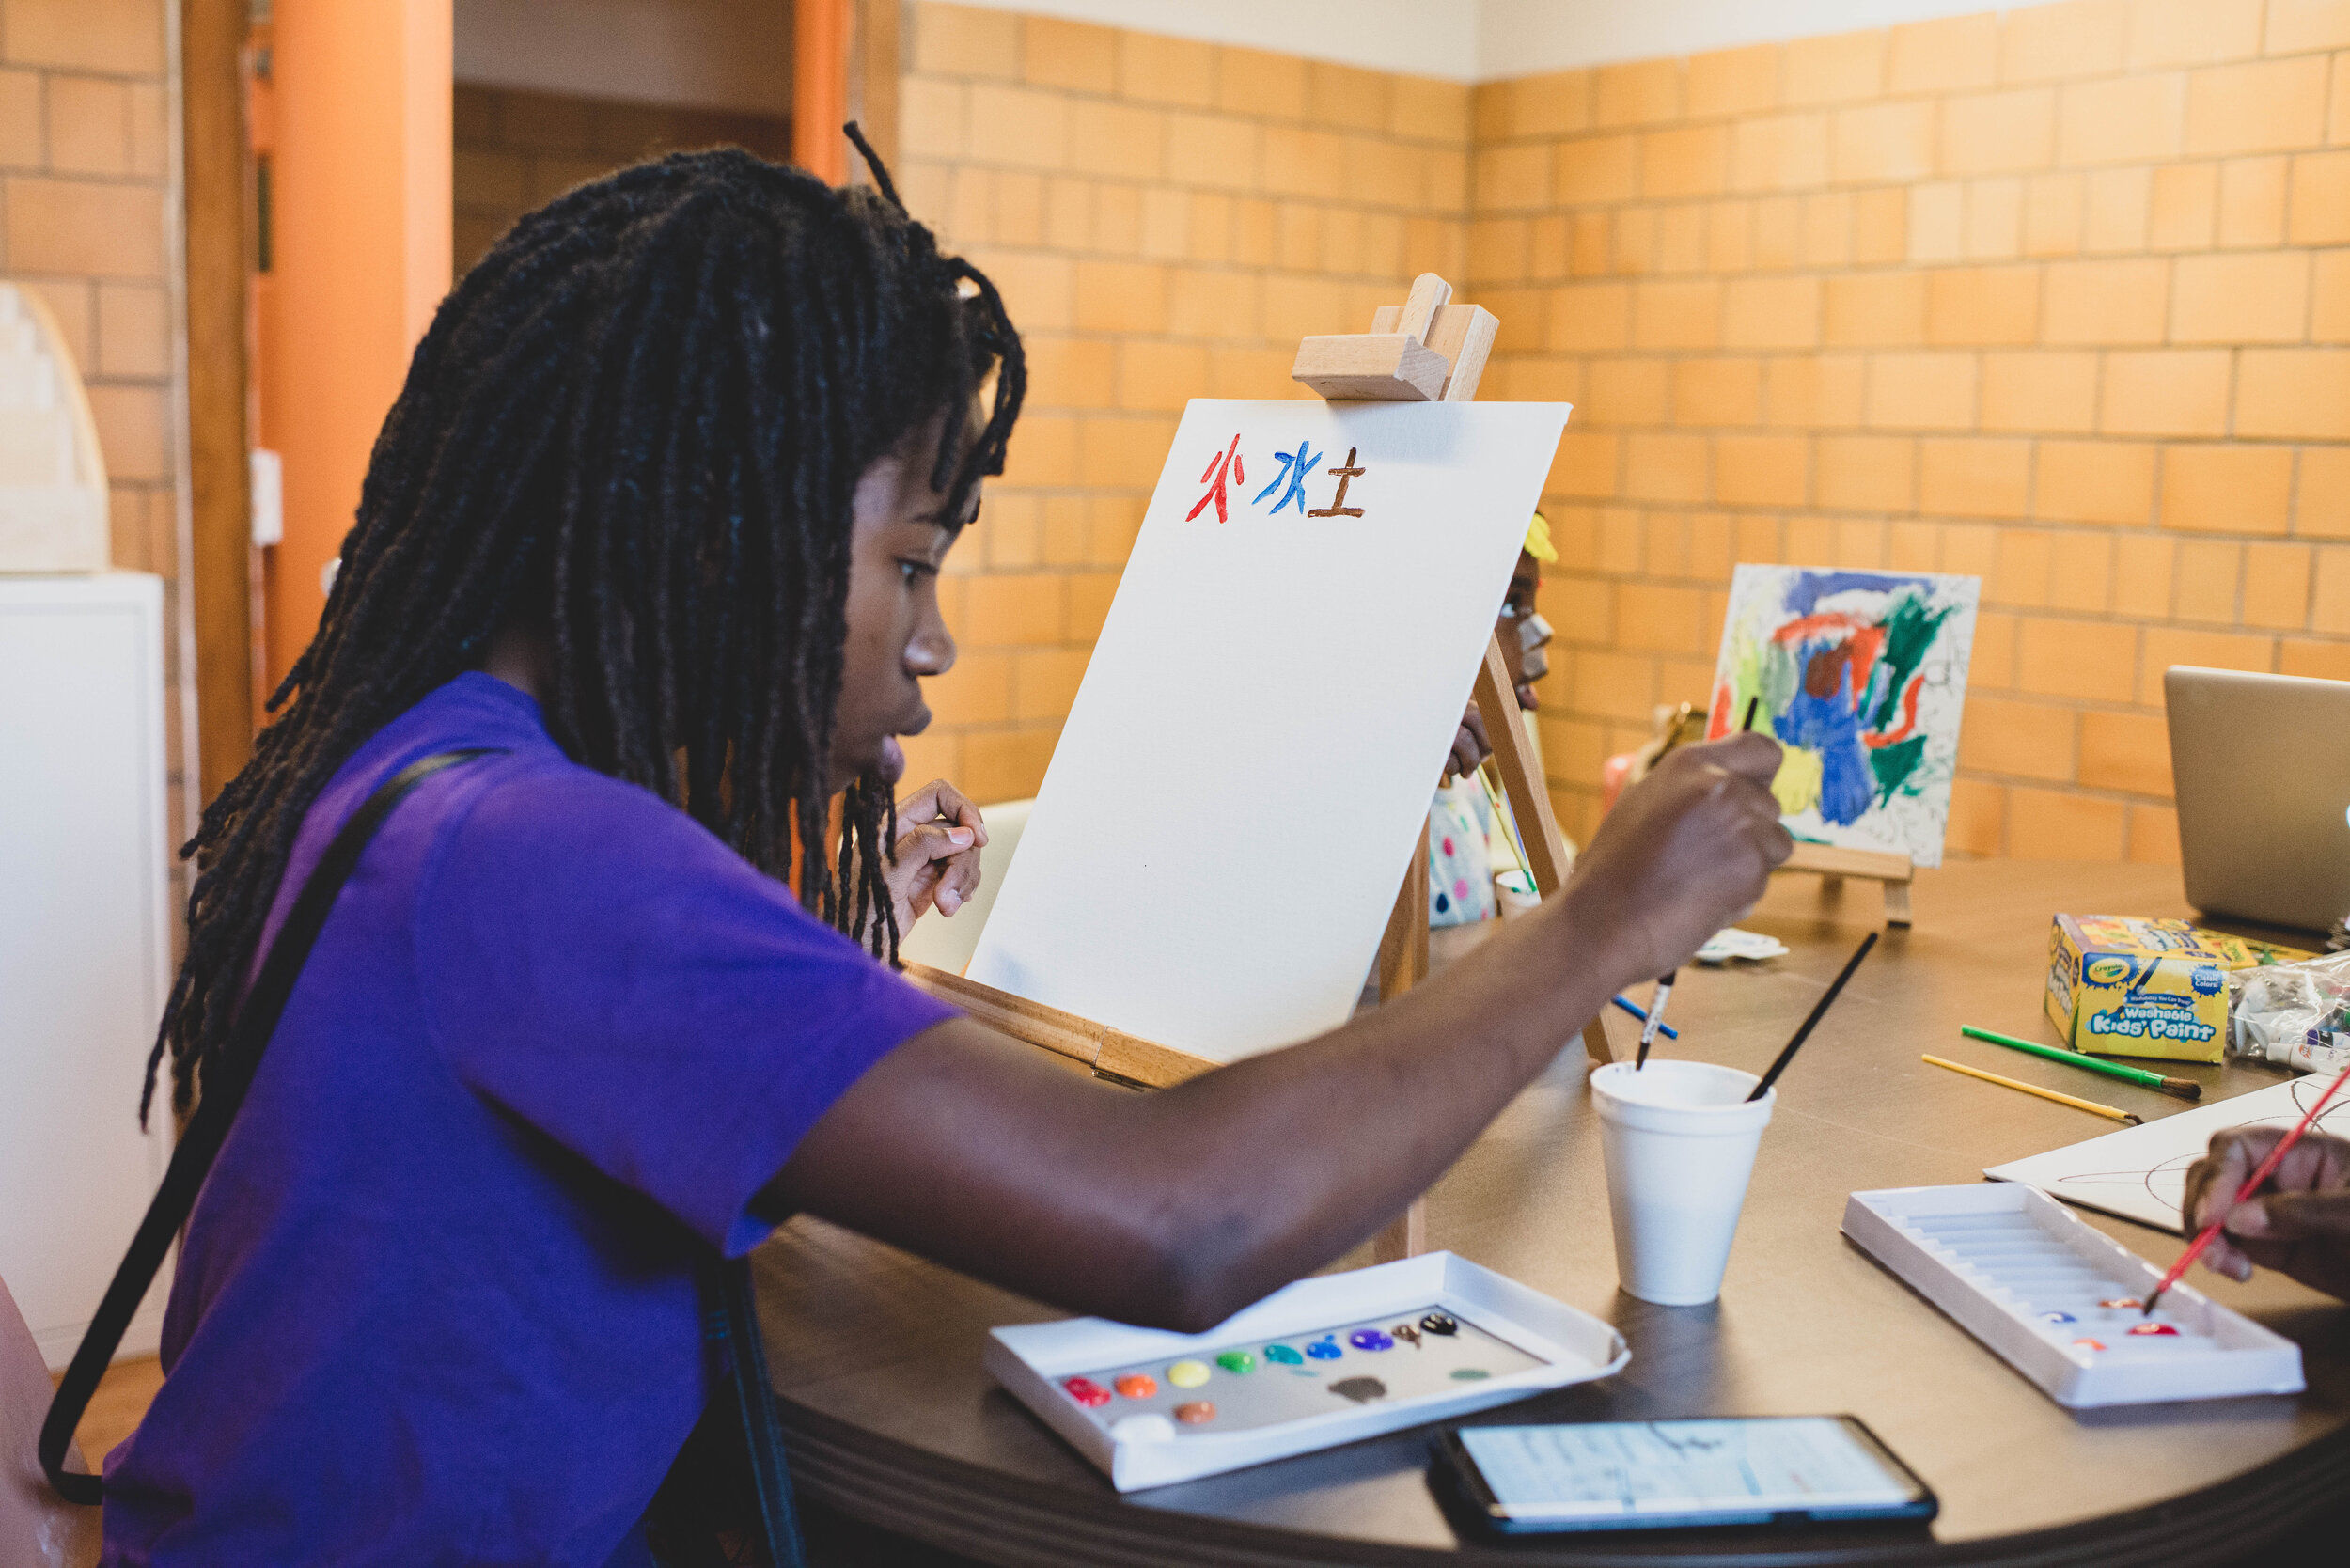 As our  work with young people  evolves, one vital piece remains: We value process over product and people over institutions. Our programming centers connection, curiosity and reflection as vital ingredients of a humanizing learning space.